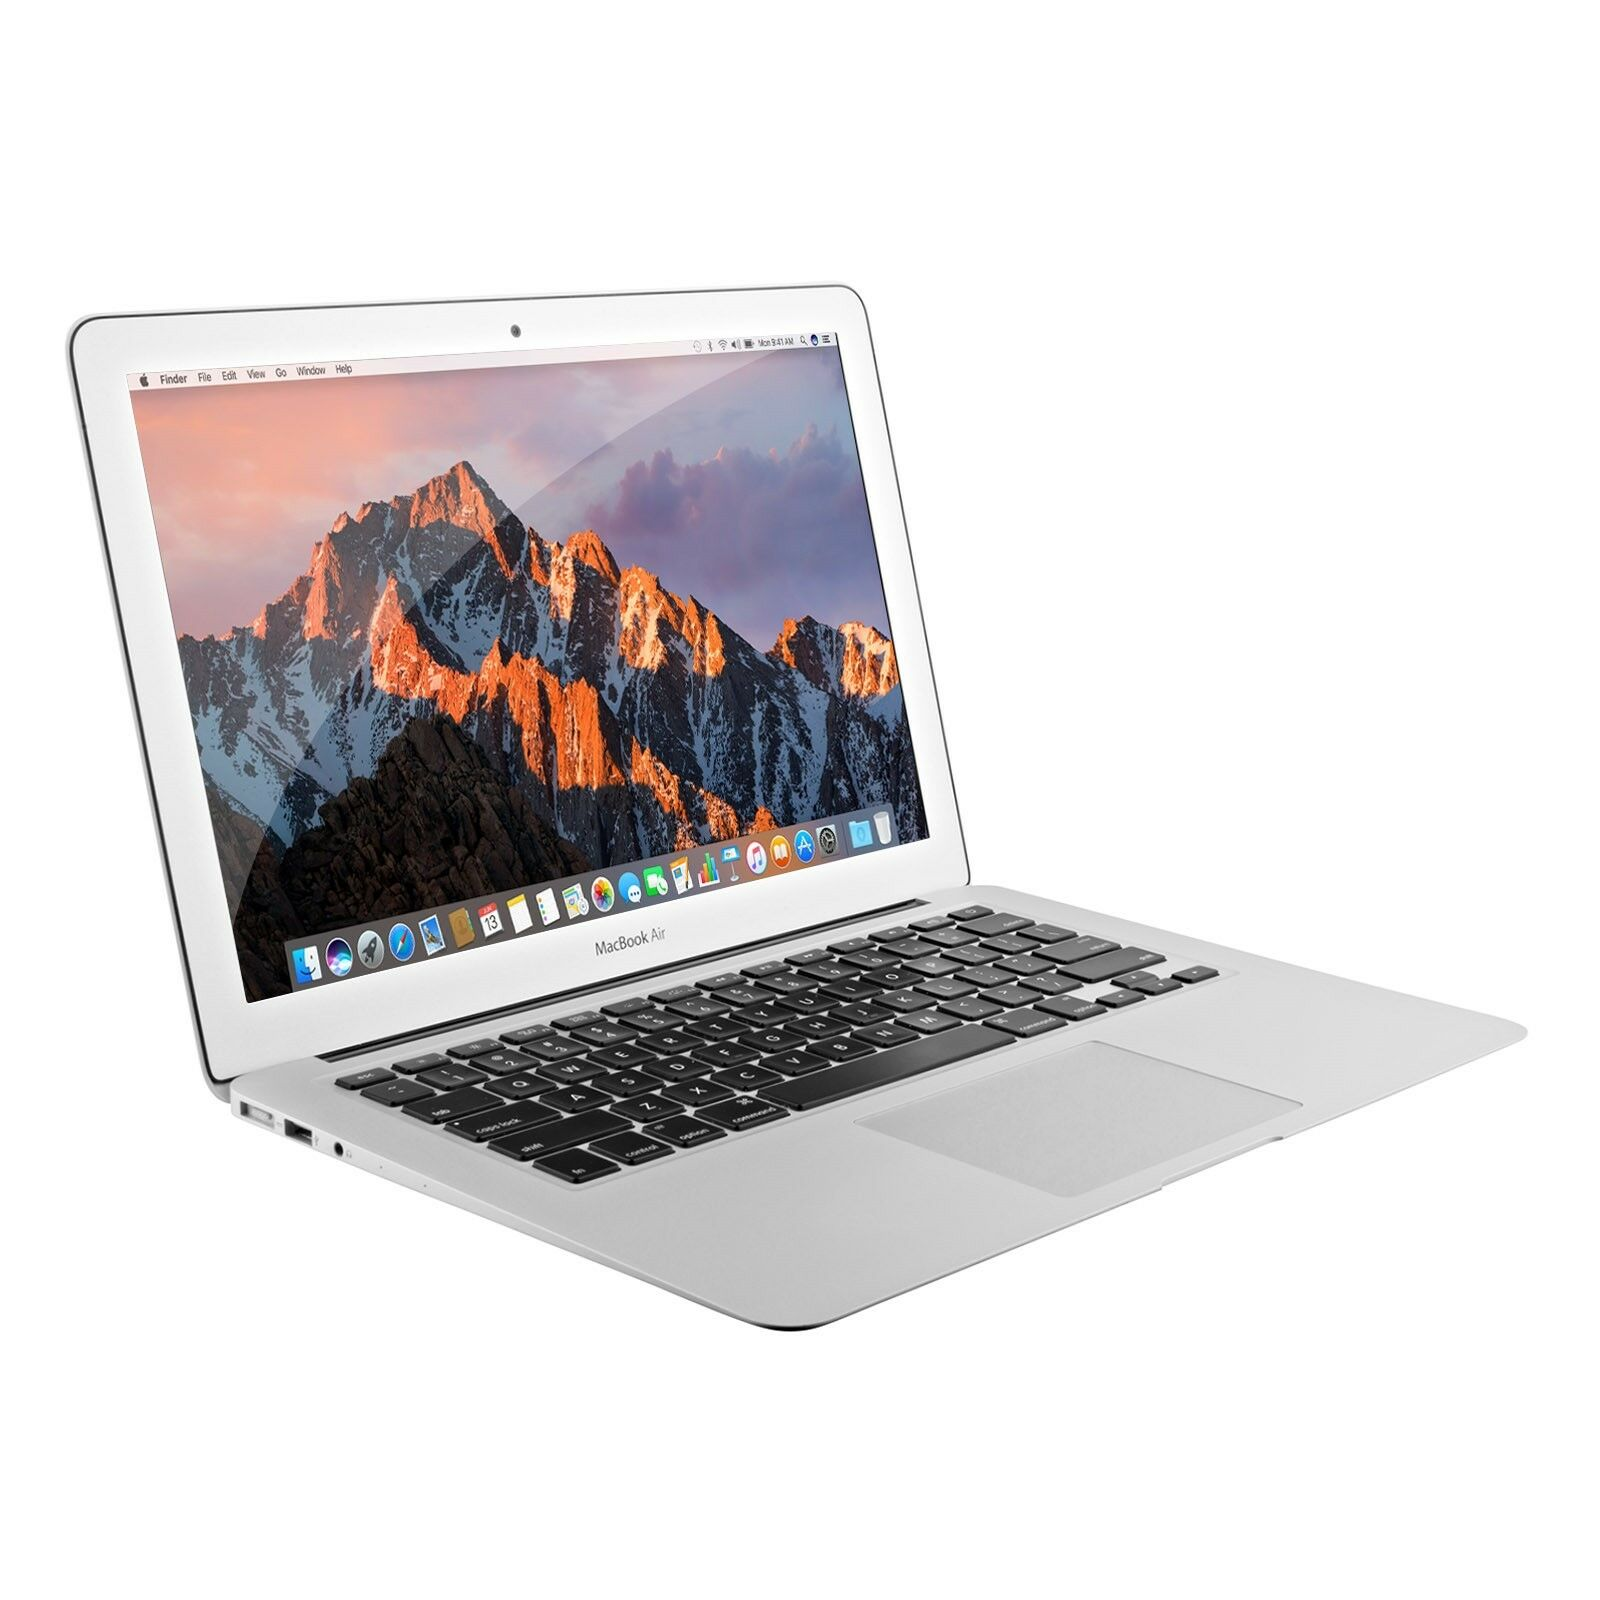 apple macbook air 13 1 3 ghz intel core i5 256gb ssd 4gb ddr3 ram md761ll a. Black Bedroom Furniture Sets. Home Design Ideas